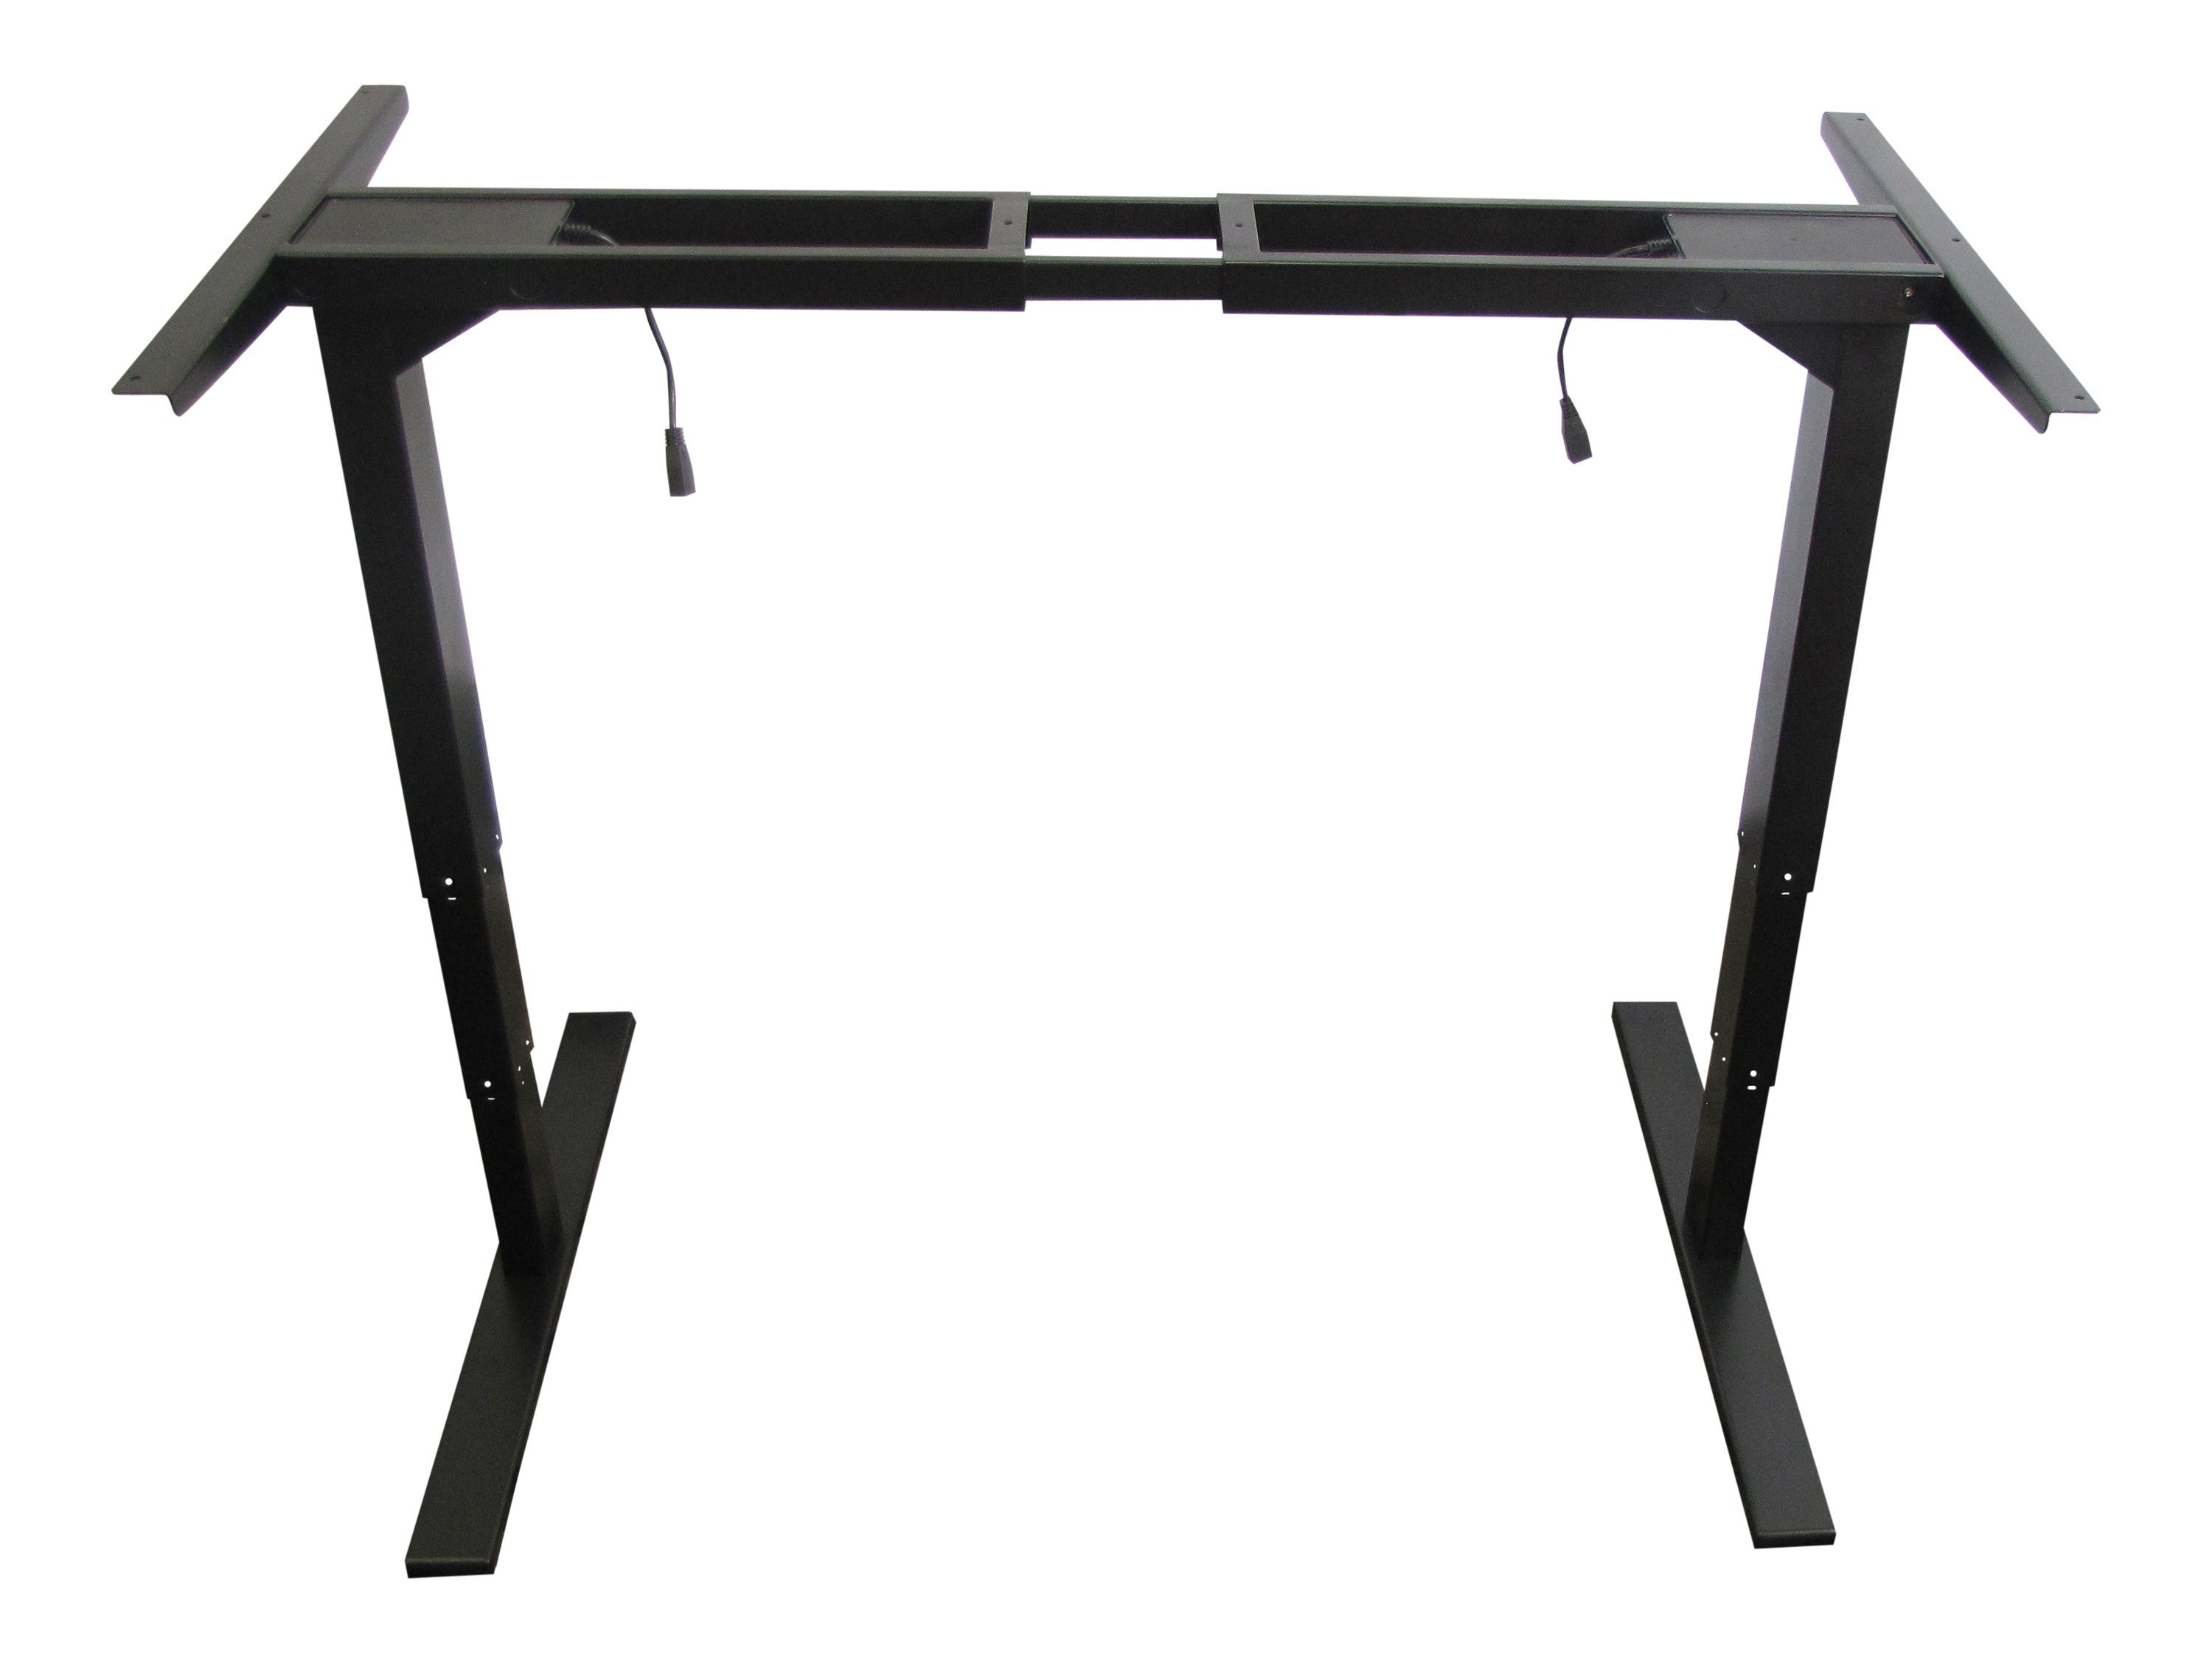 table bar legs worktop breakfast folding desk itm leg adjustable kitchen